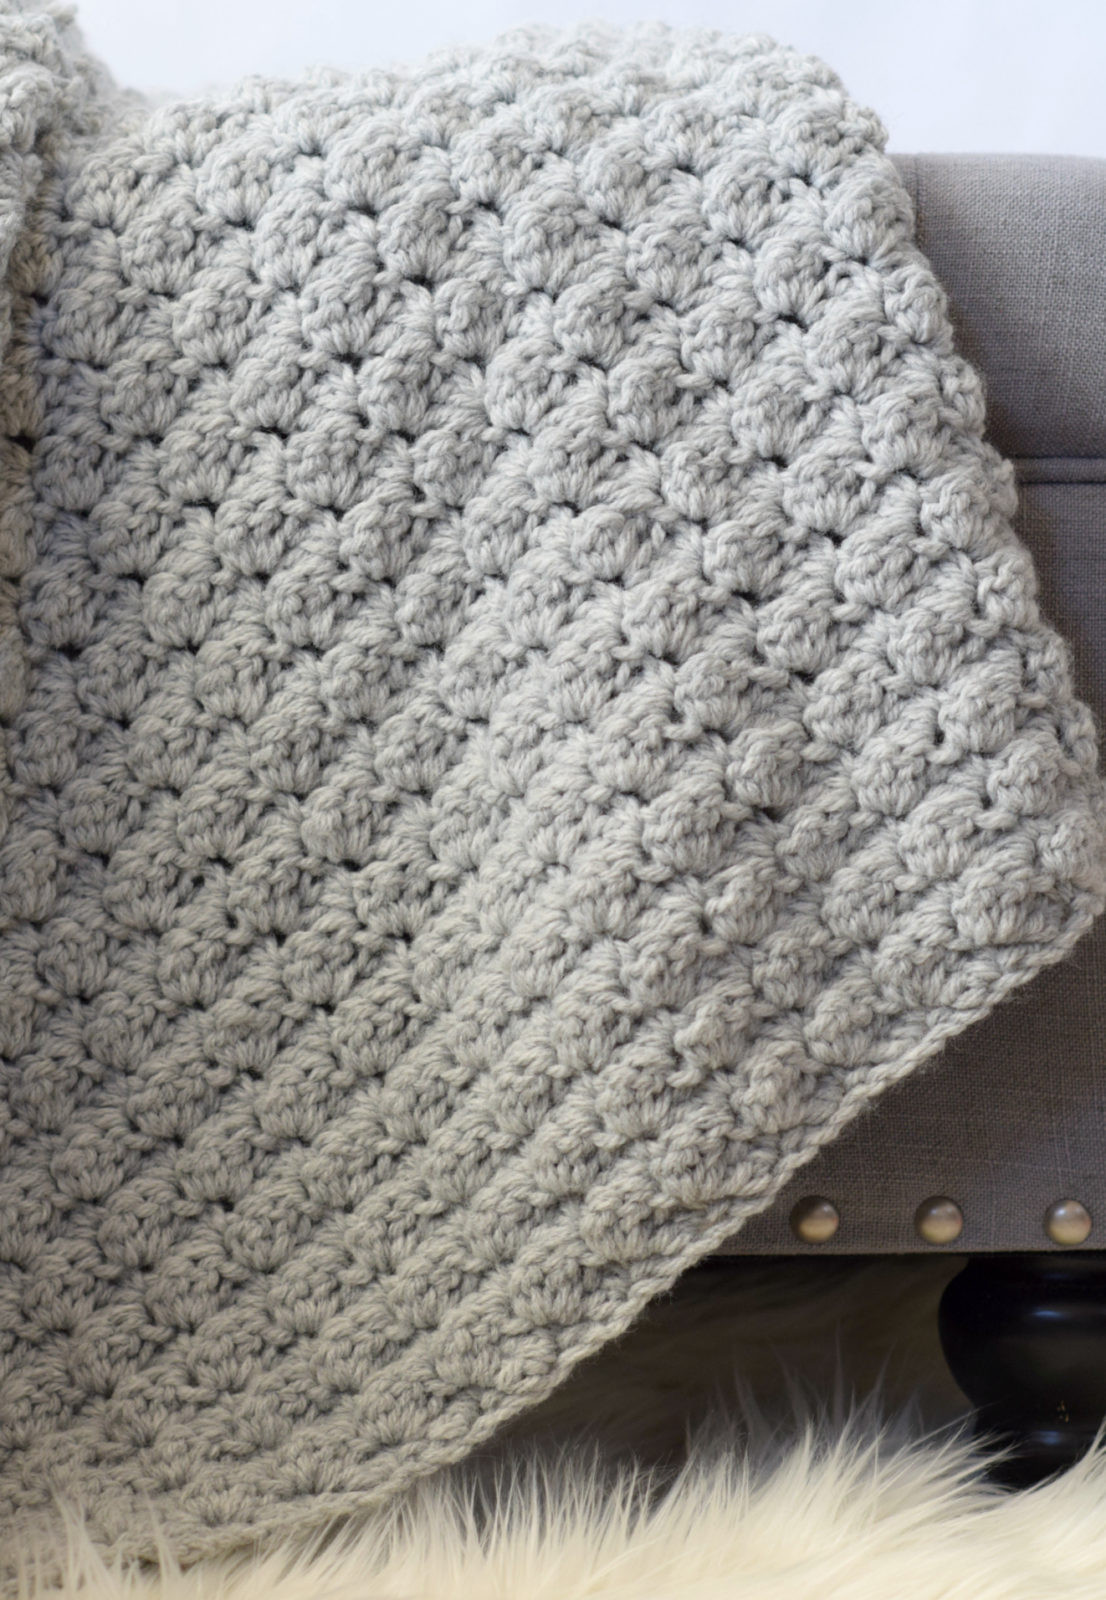 Awesome Simple Crocheted Blanket Go to Pattern – Mama In A Stitch Crochet Afghans Of Marvelous 47 Models Crochet Afghans